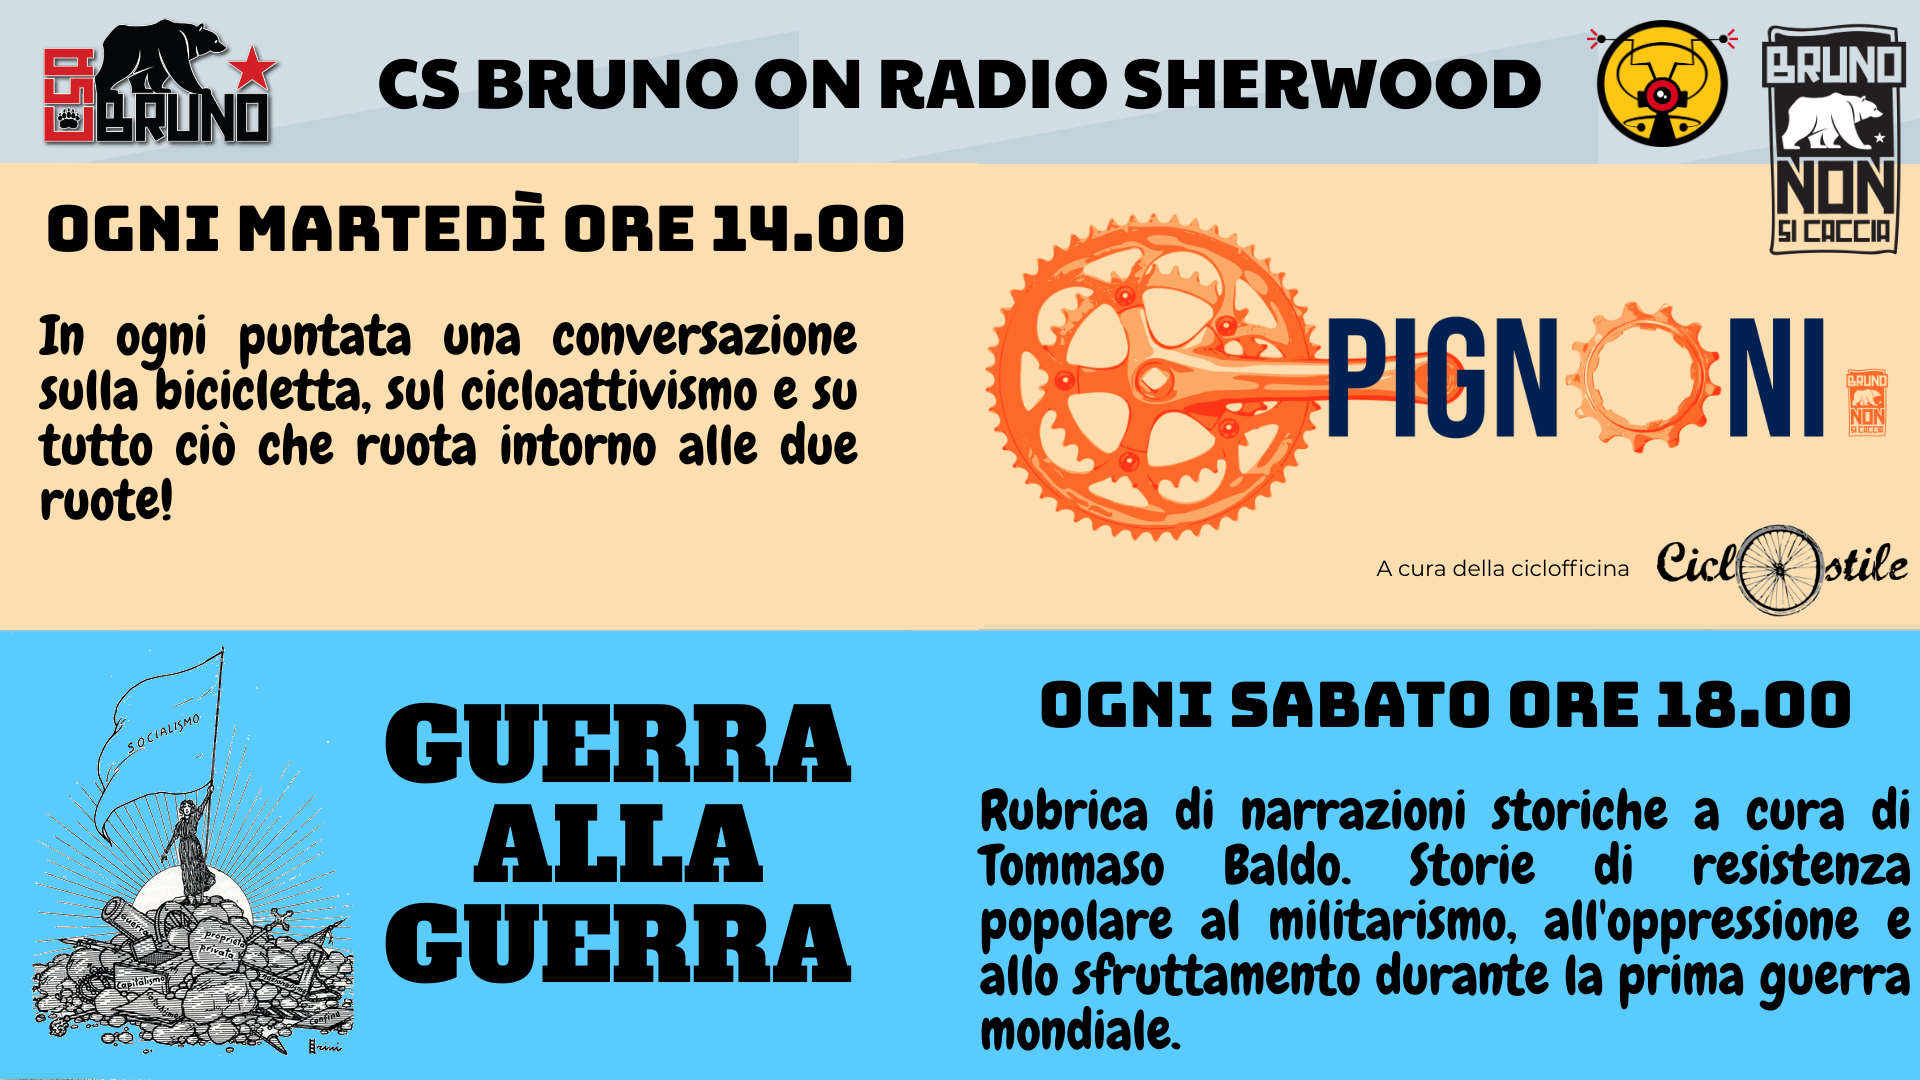 CS Bruno on Radio Sherwood